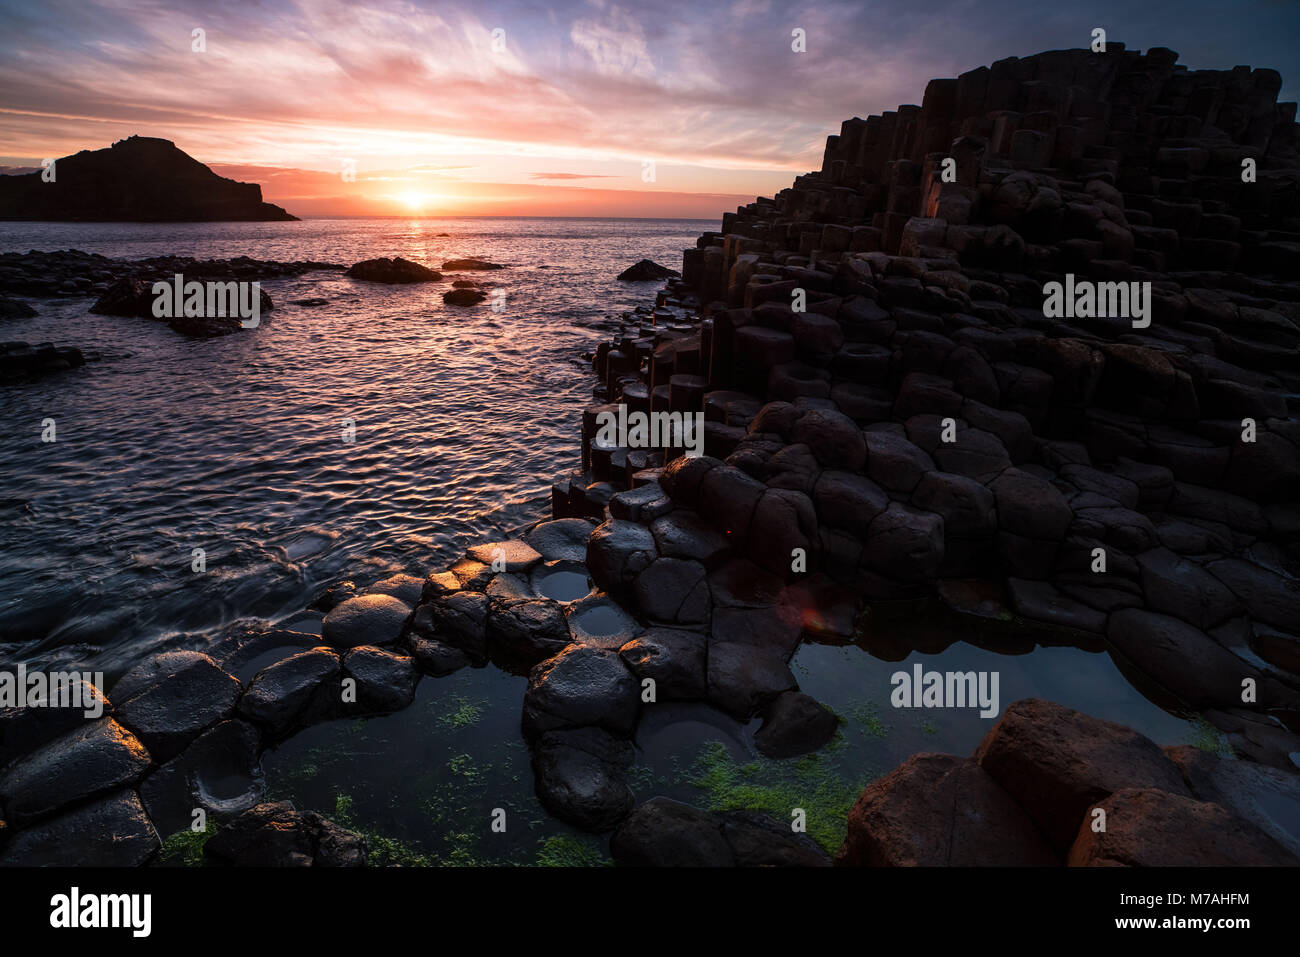 Abstract bile formation on the dream coast of the Giants Causeway, sundown, Northern Ireland - Stock Image